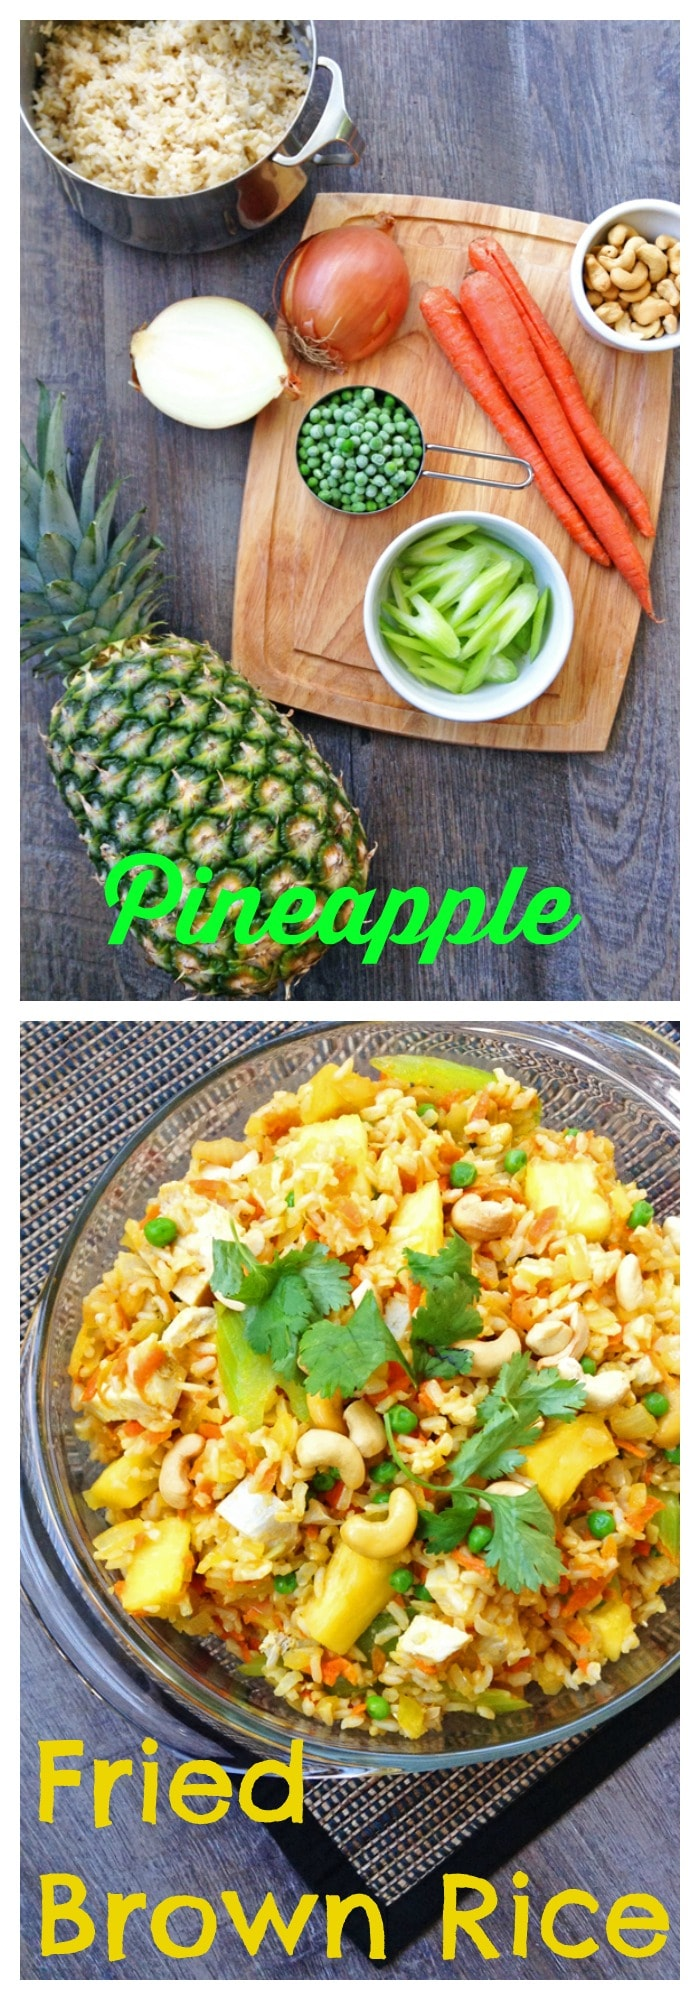 FOOD - Pineapple Fried Brown Rice. Sweet and savory whole grain Pineapple Fried Brown Rice packs fruits AND veggies into one main dish. https://www.superhealthykids.com/pineapple-fried-brown-rice/